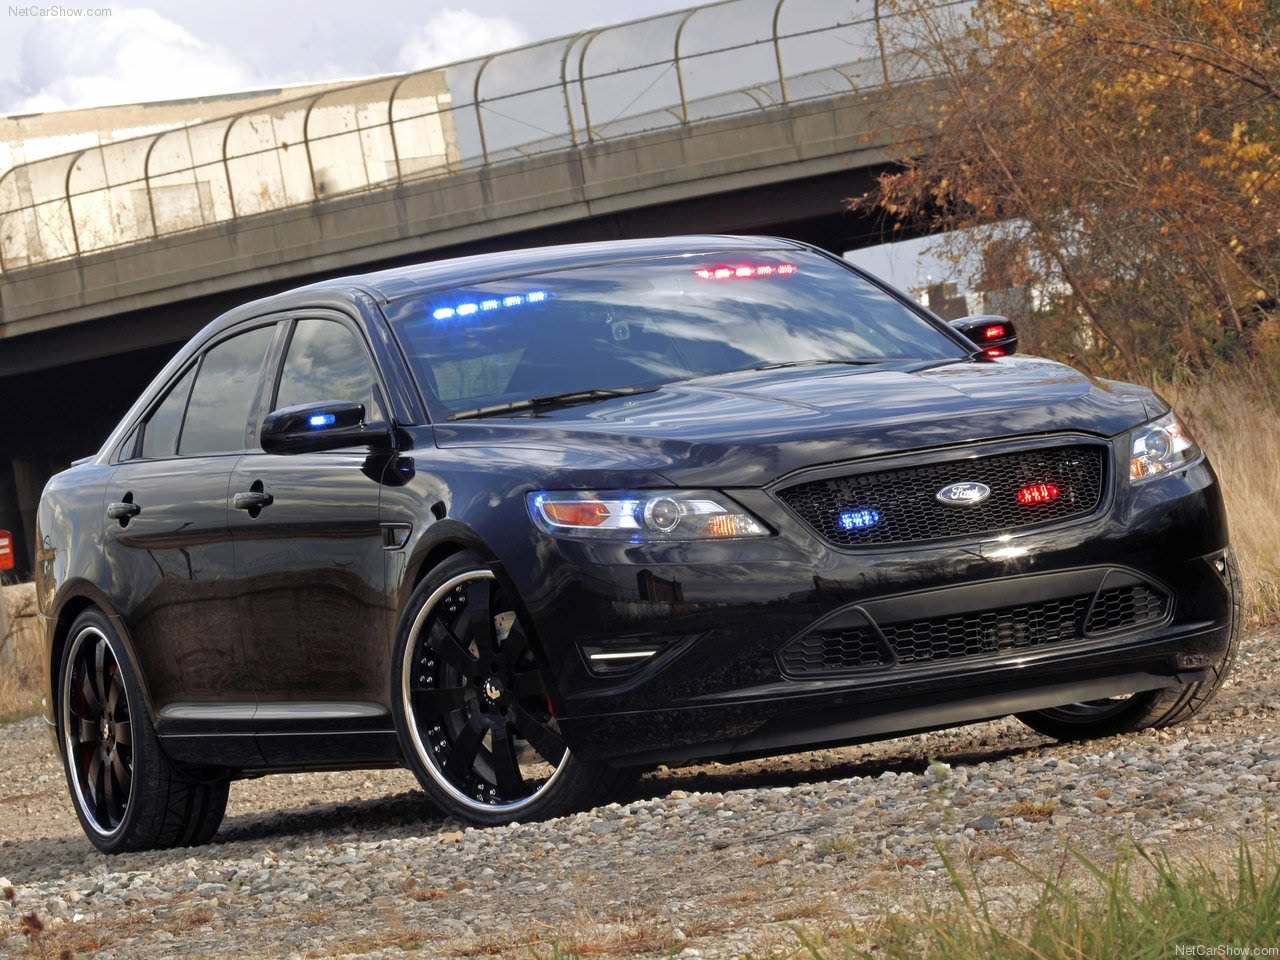 2017 Ford Stealth Police Interceptor Concept photo - 4